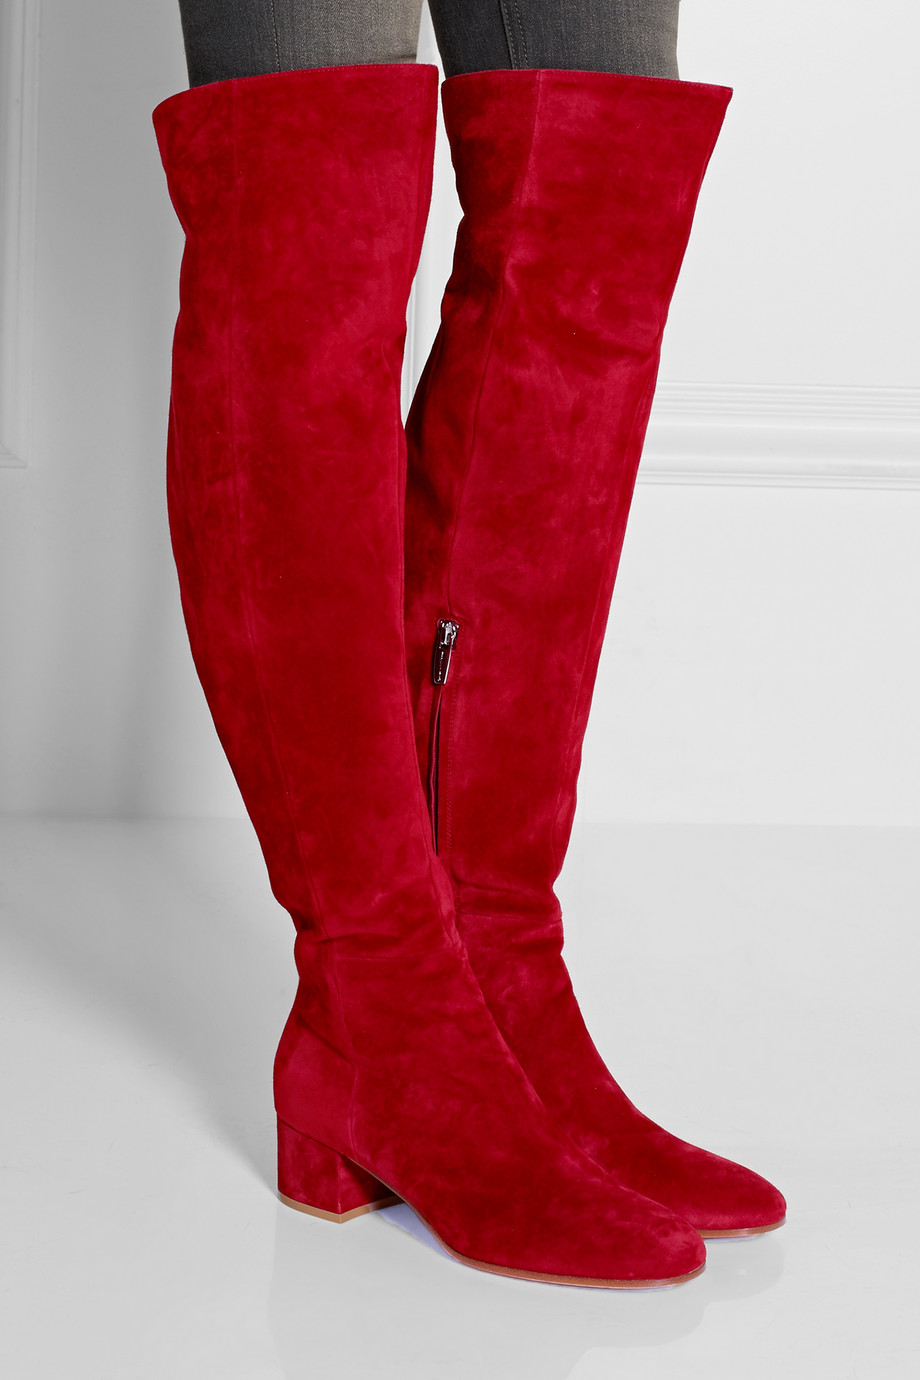 71d8cb29912 Detail Feedback Questions about Real Pic Winter Red Suede Round Toe Over  The Knee Boots Thick Heels Woman Fashion Tight High Boots Winter Long Boots  on ...